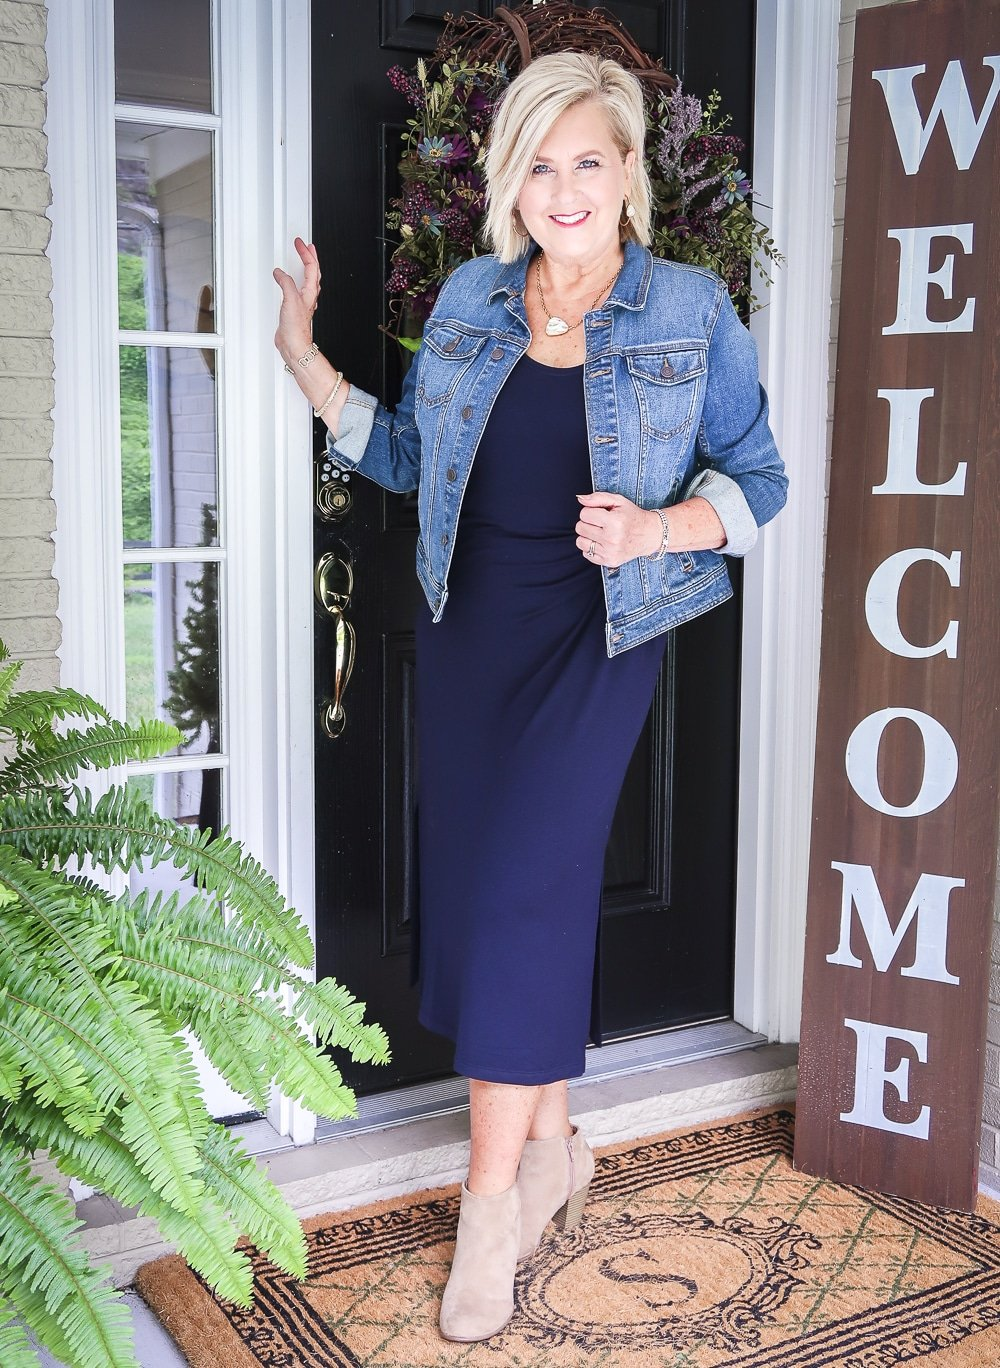 Fashion Blogger 50 Is Not Old in a denim Jacket, a navy midi dress, and ankle boots